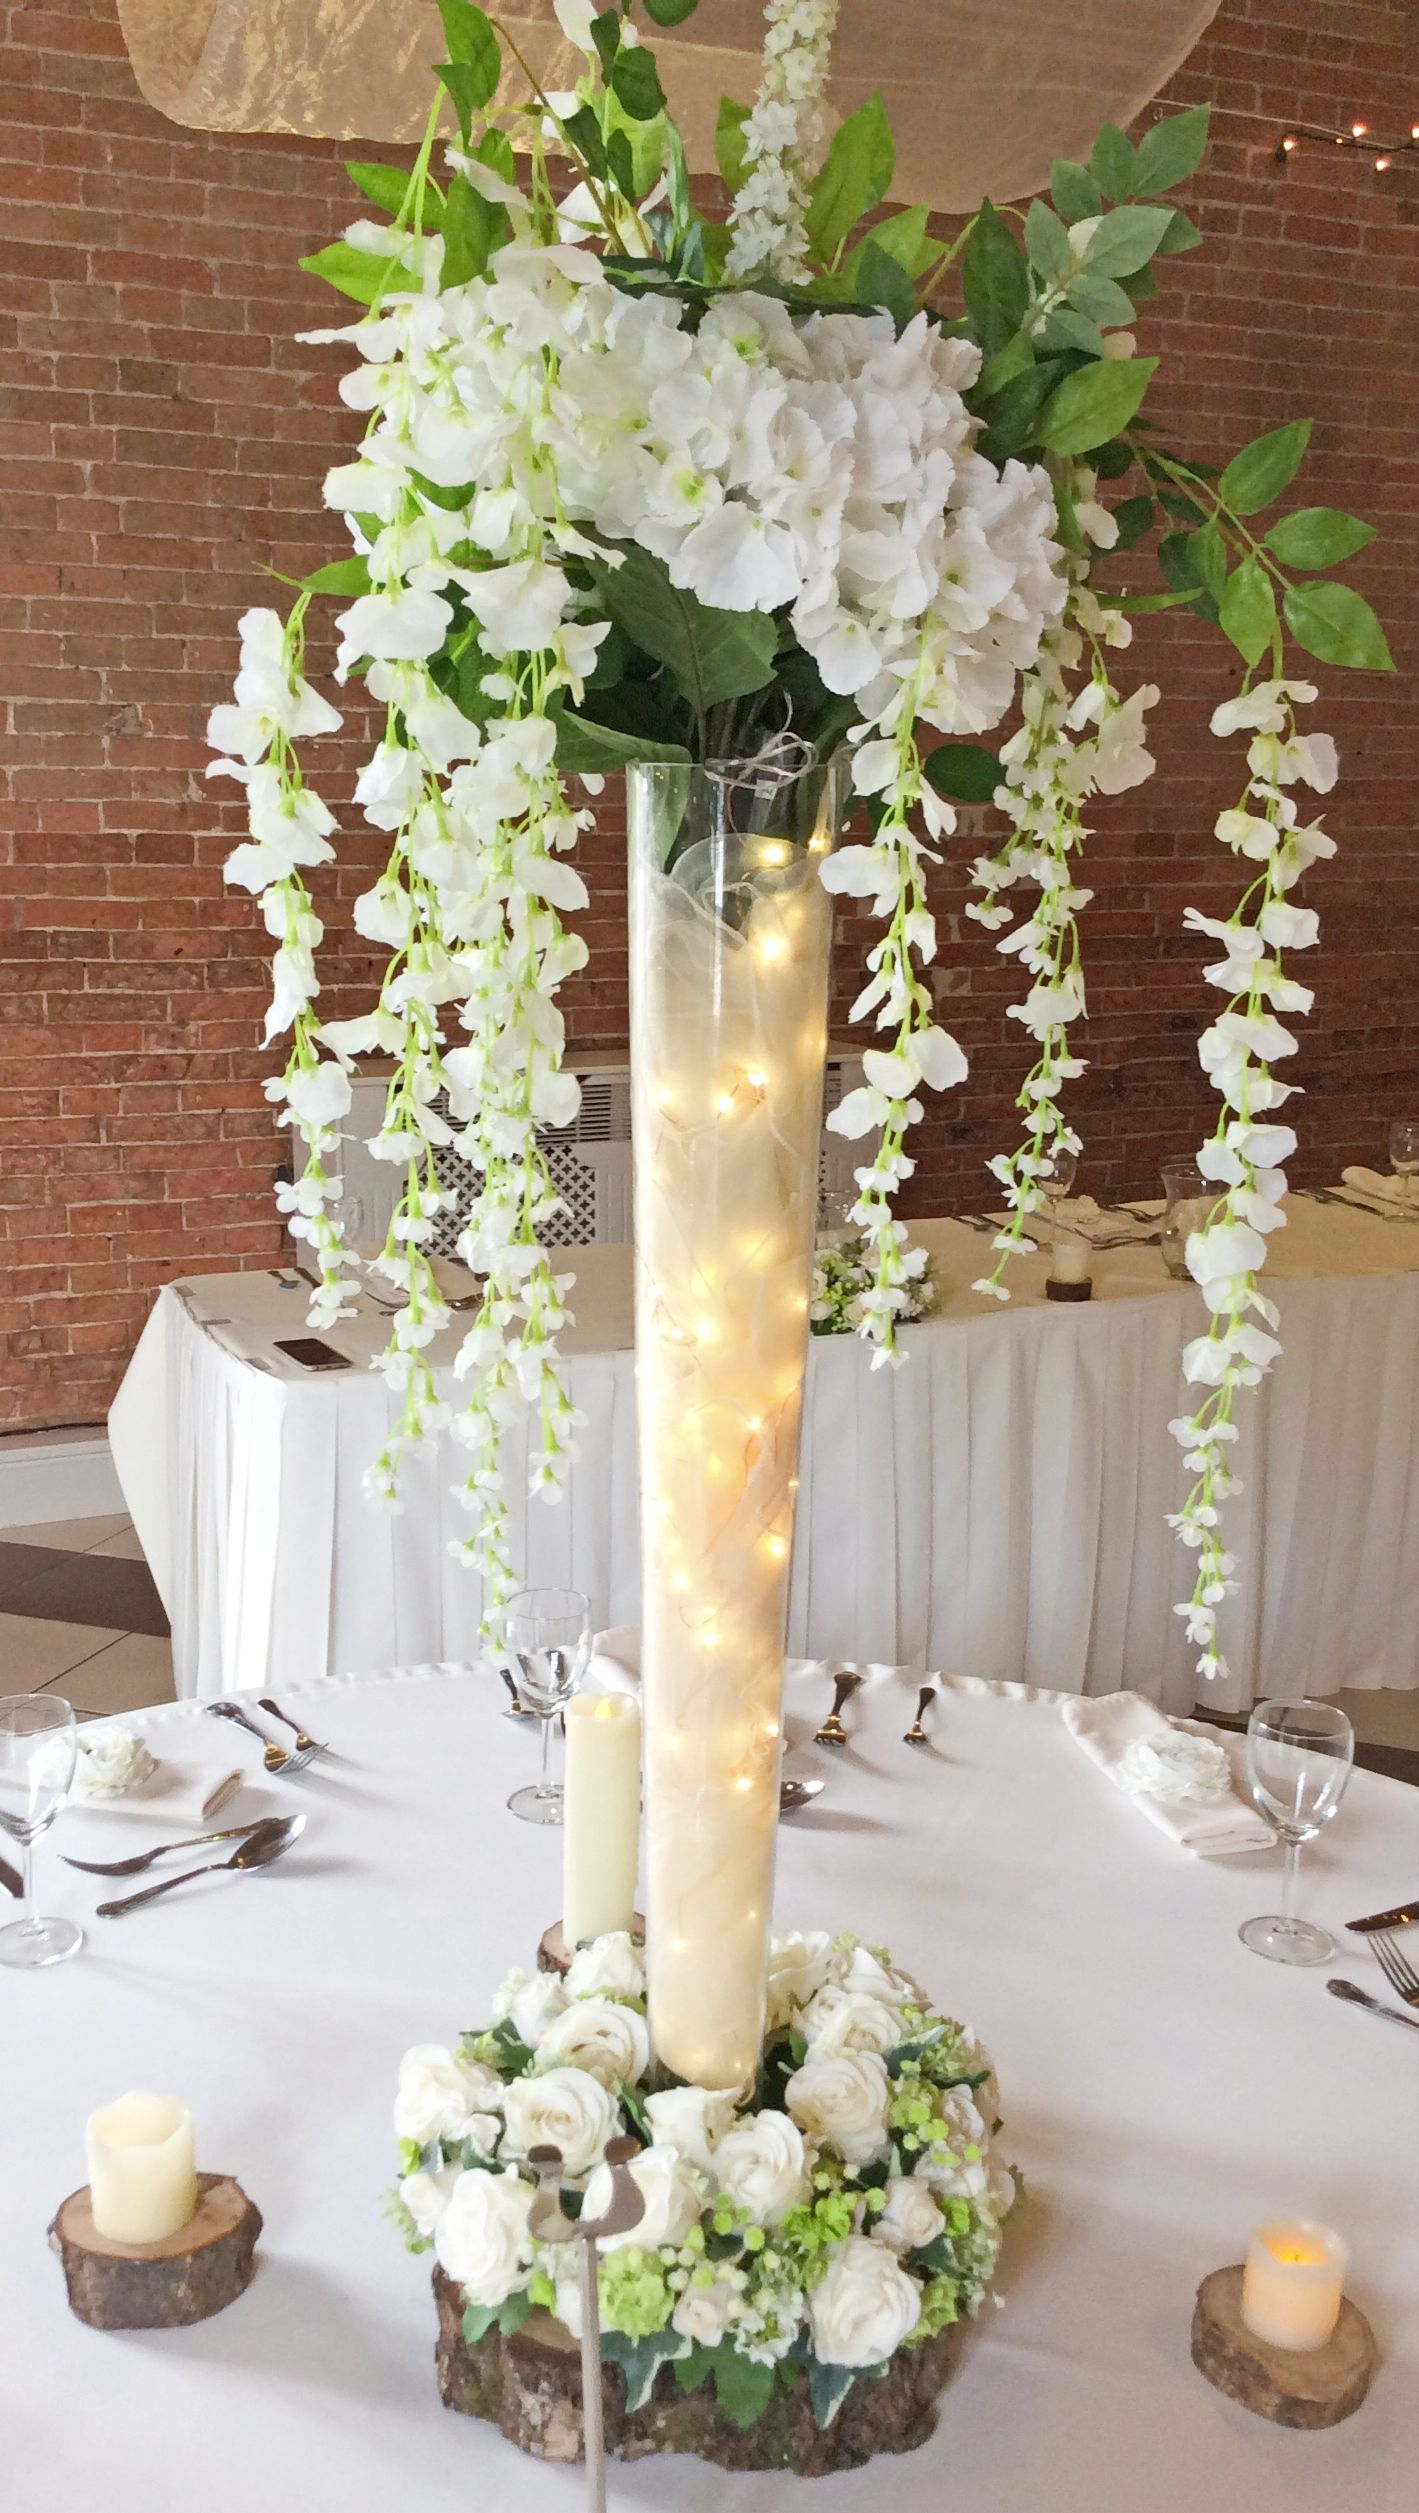 Tall Vase With Wisteria And Lights Wedding Floral with regard to dimensions 1419 X 2513